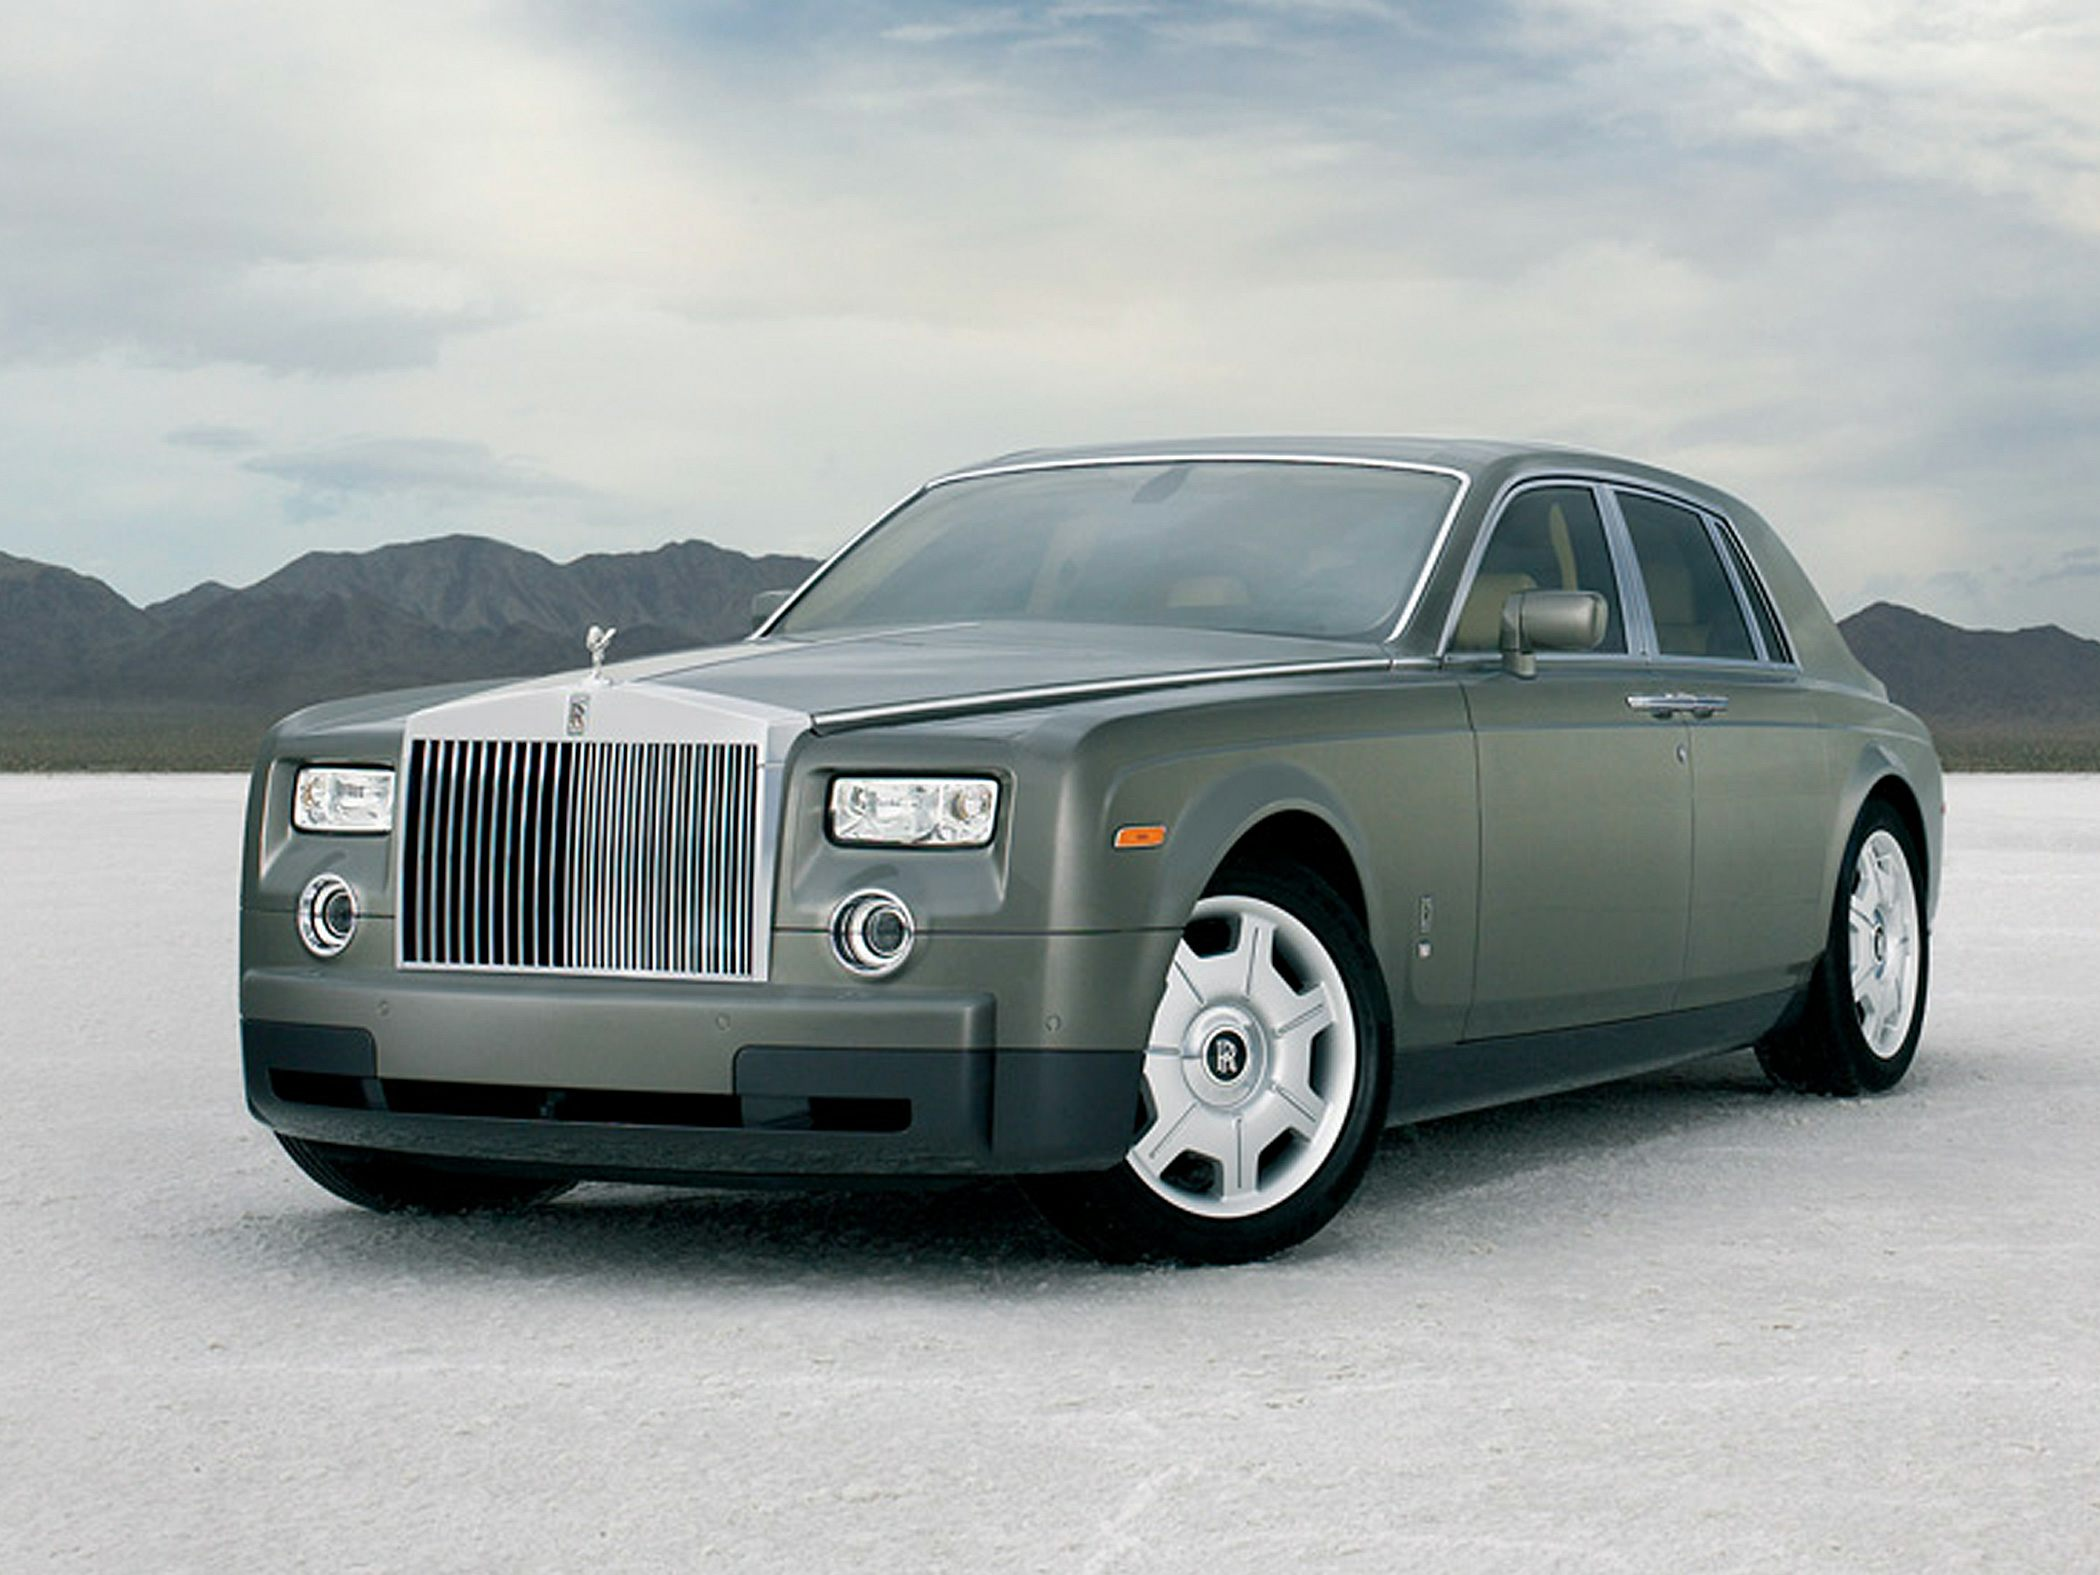 Neglected Rolls-Royce Phantom may be the saddest of all time